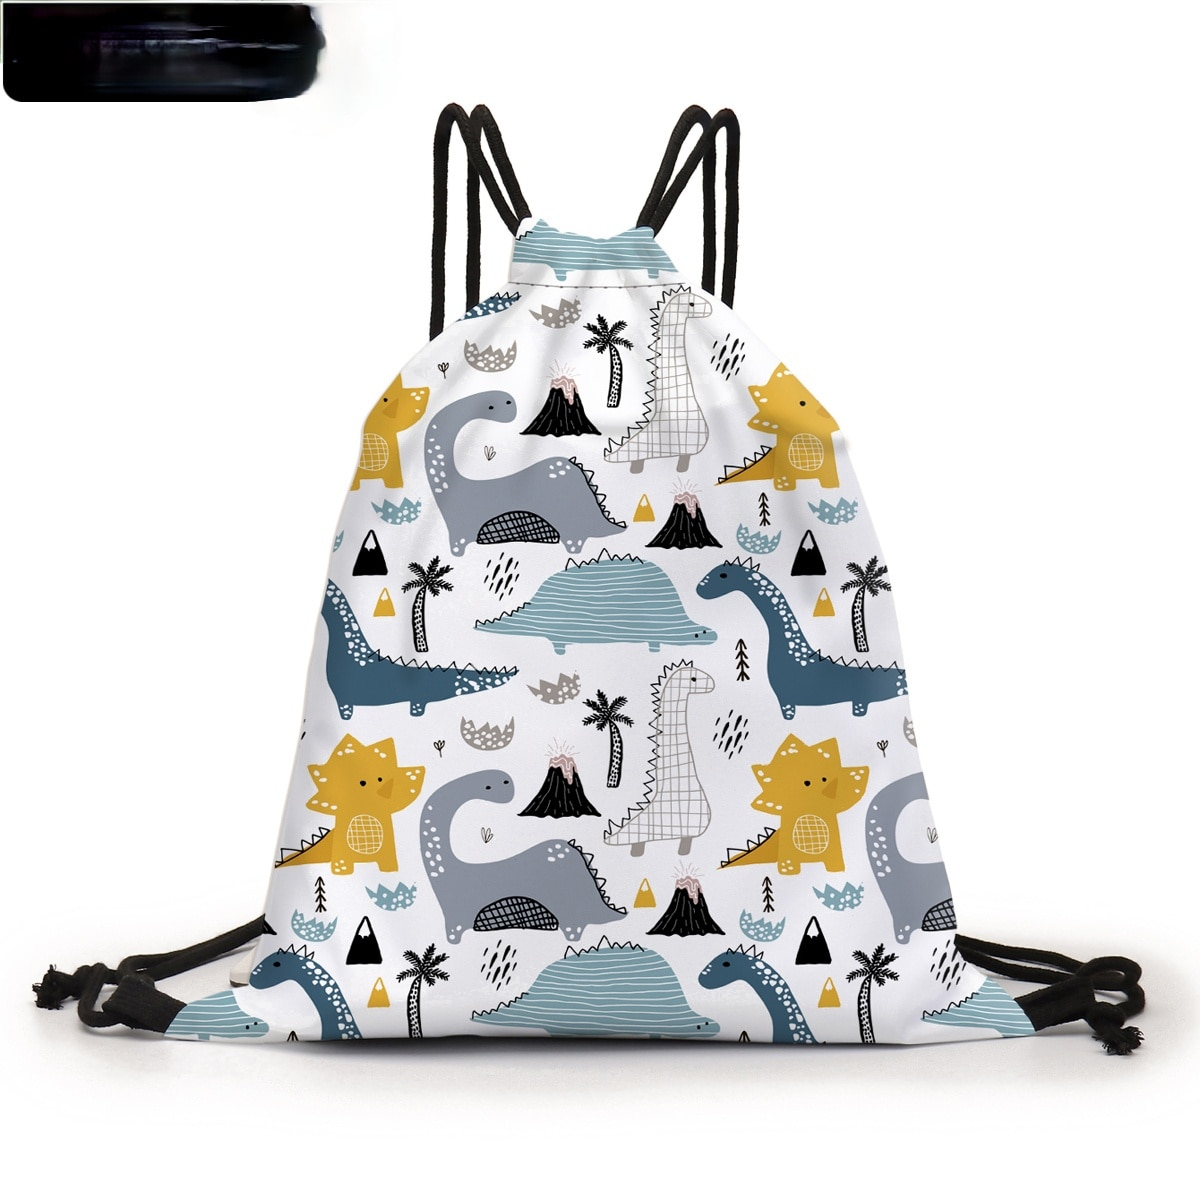 Drawstring Bag Colorful Dino 3D Printed Pouch Bag Cute Backpack Purse Bags For TravelD60441